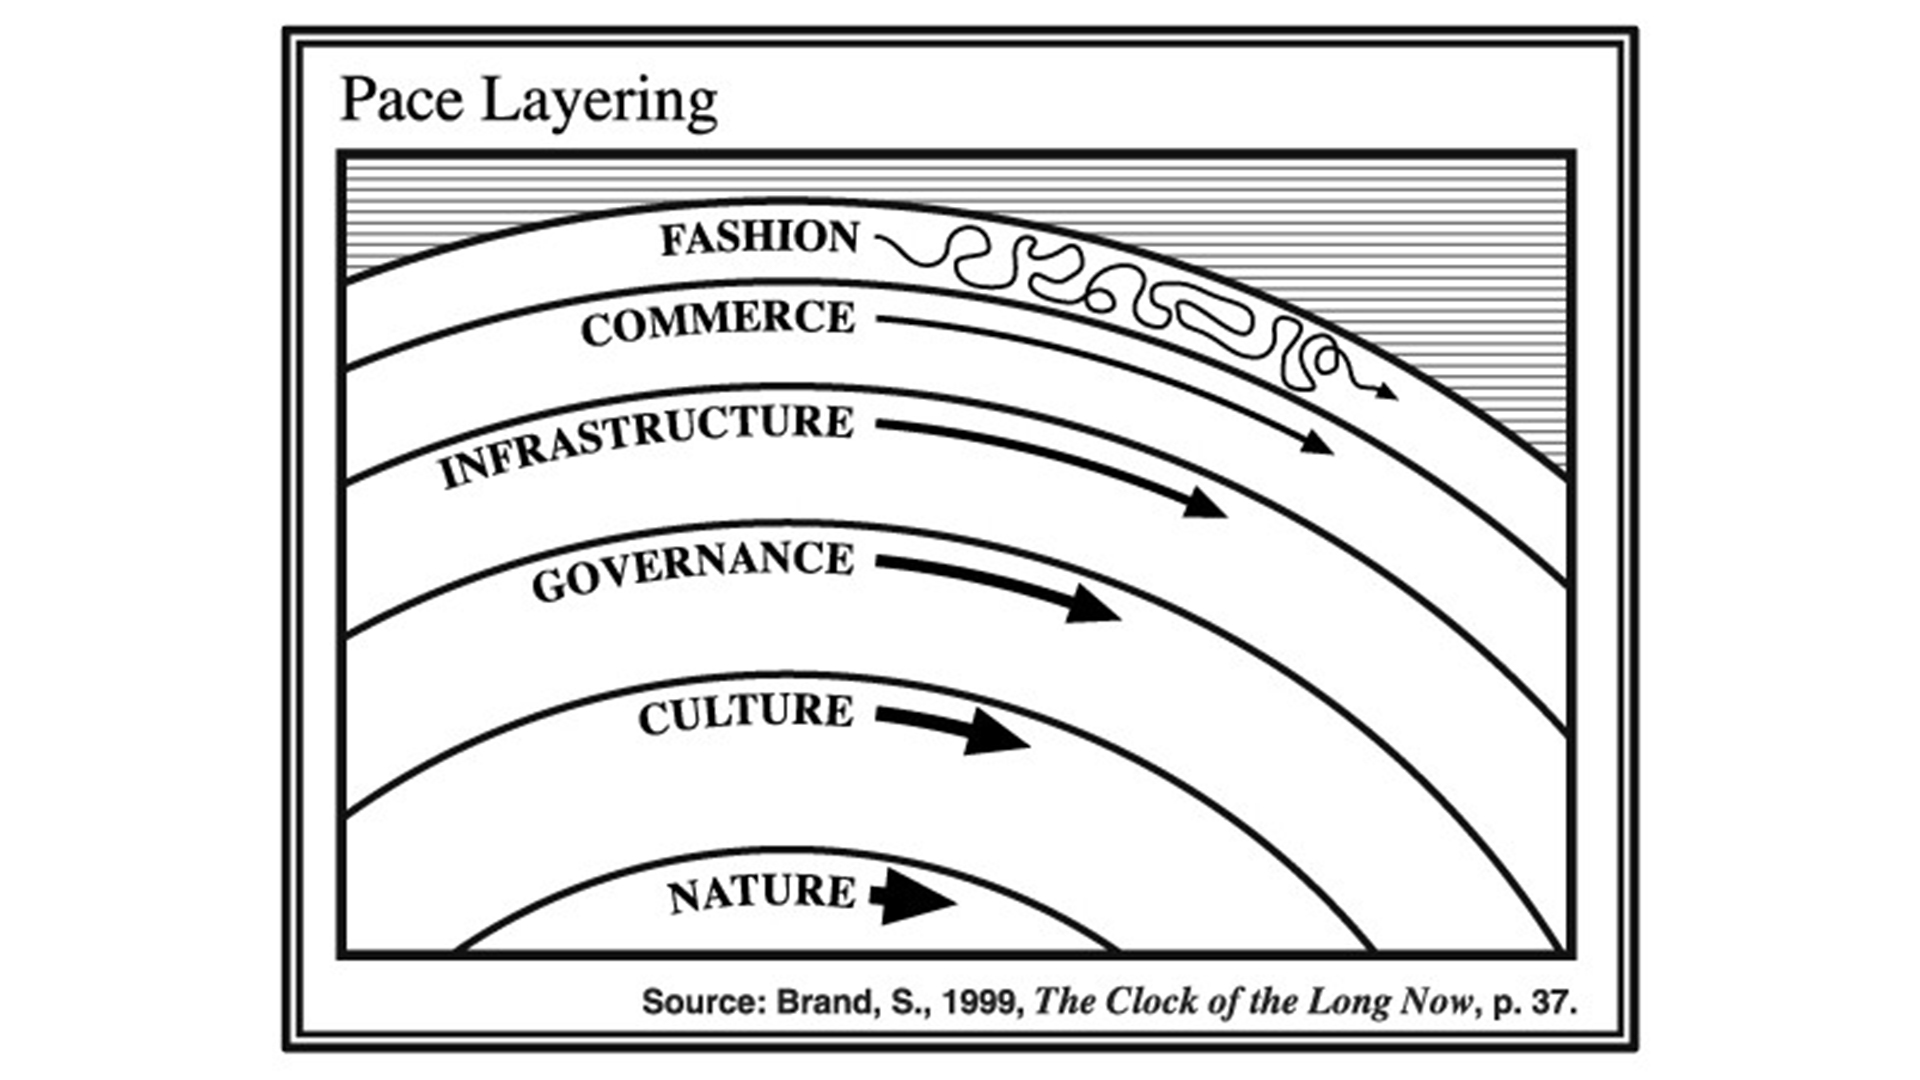 A graphic from Stewart Brand showing layers representing Nature, Culture, Governance, Infrastructure, Commerce and Fashion all layered on top of one another.